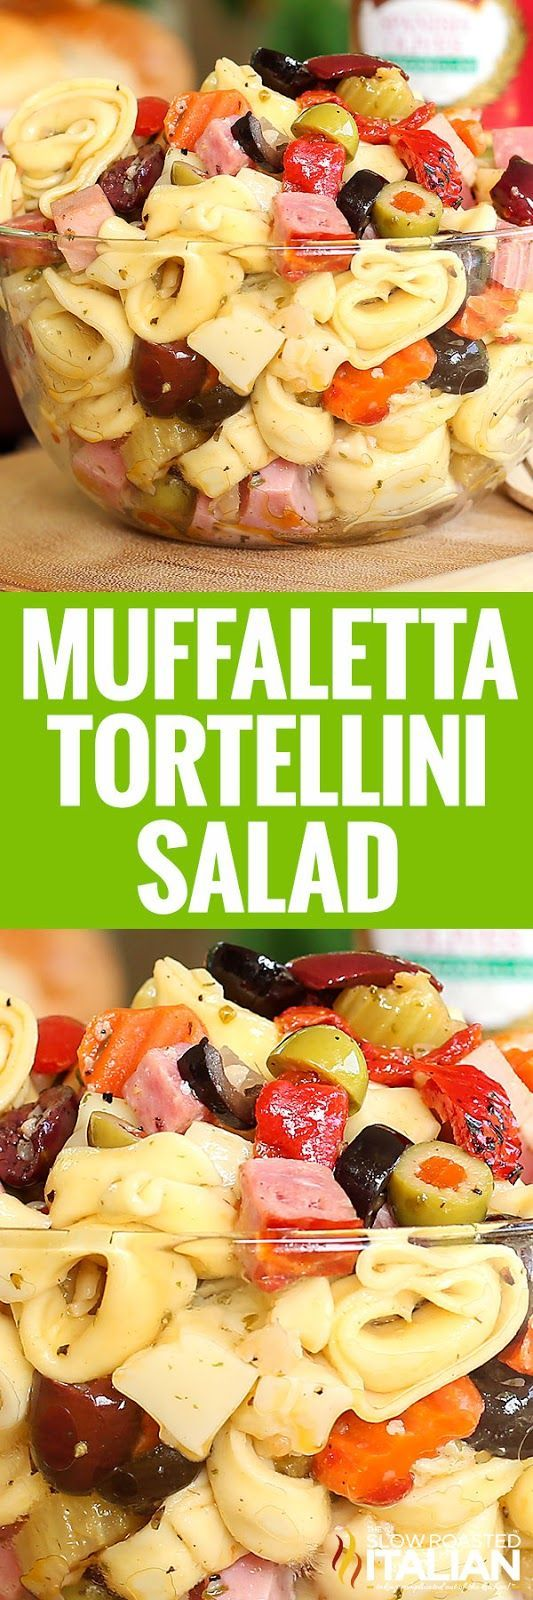 Muffaletta Tortellini Salad (With Video)